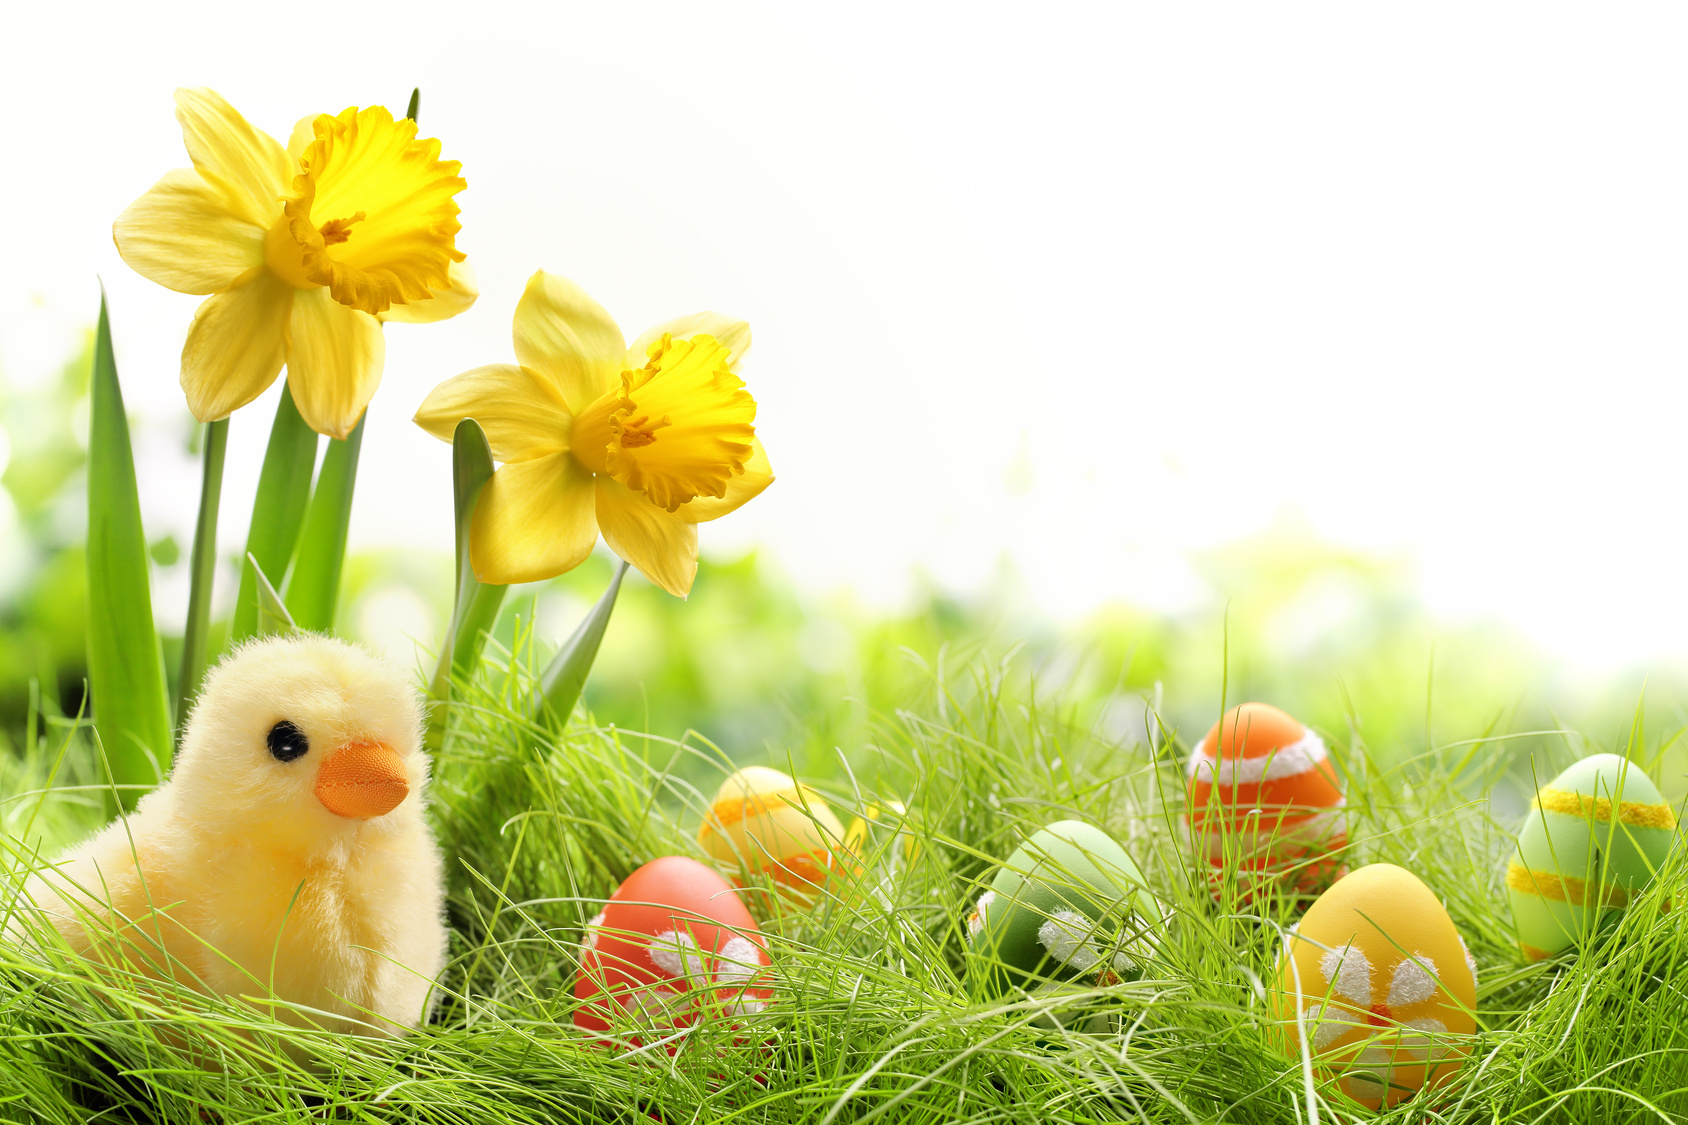 Happy Easter From The Costen Associates Team